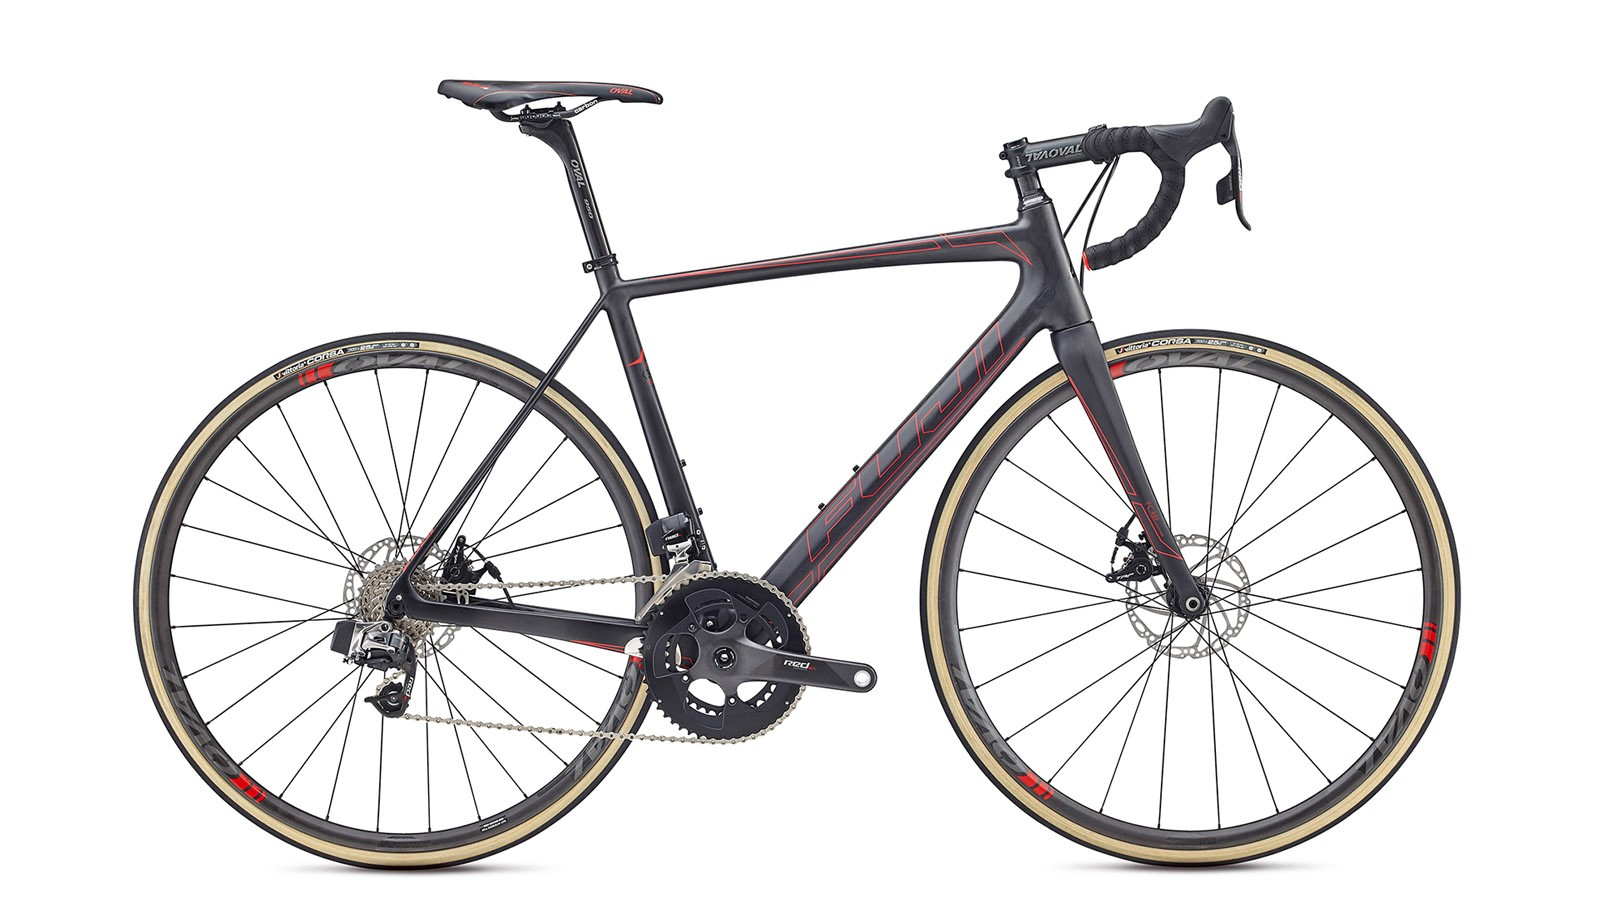 Even with disc brakes the SL 1.1 Disc weighs in below the UCI's 6.8kg limit